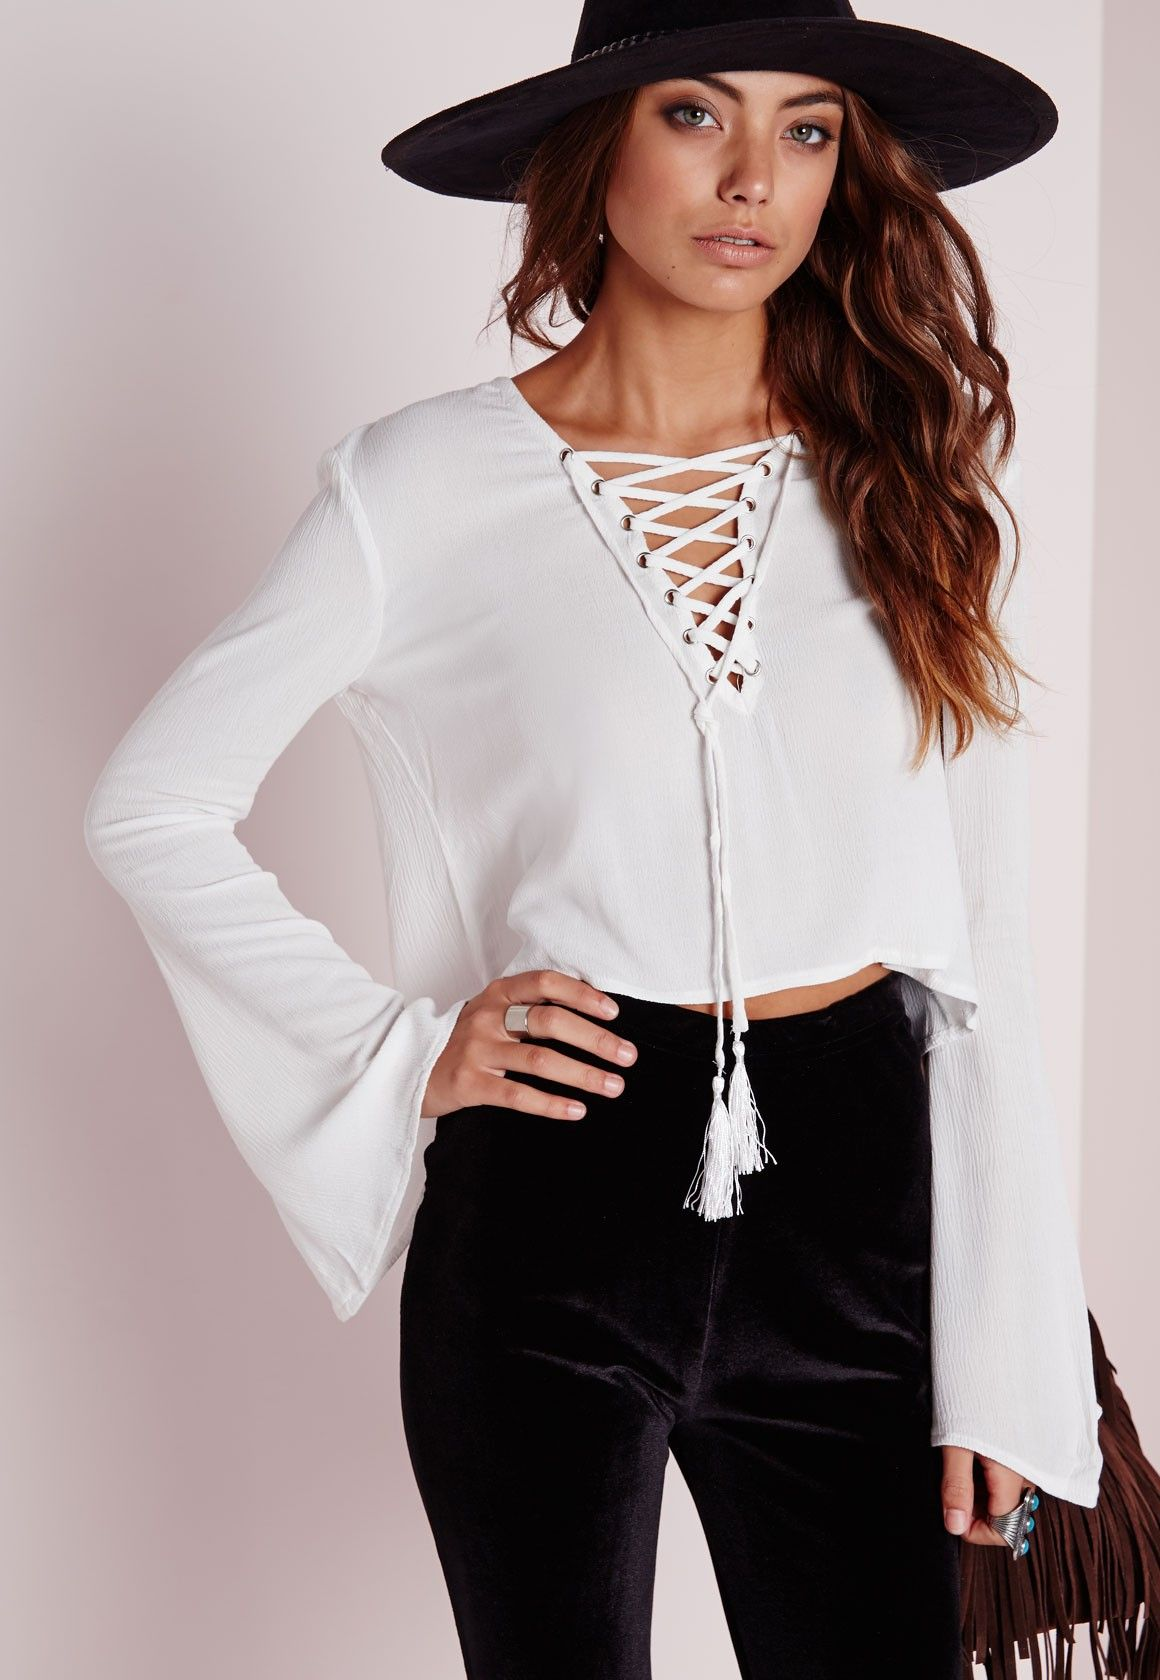 097e5f0ae0a600 Bell Sleeve Tie Up Blouse White - Bell - Sleeve - Tops - Missguided ...